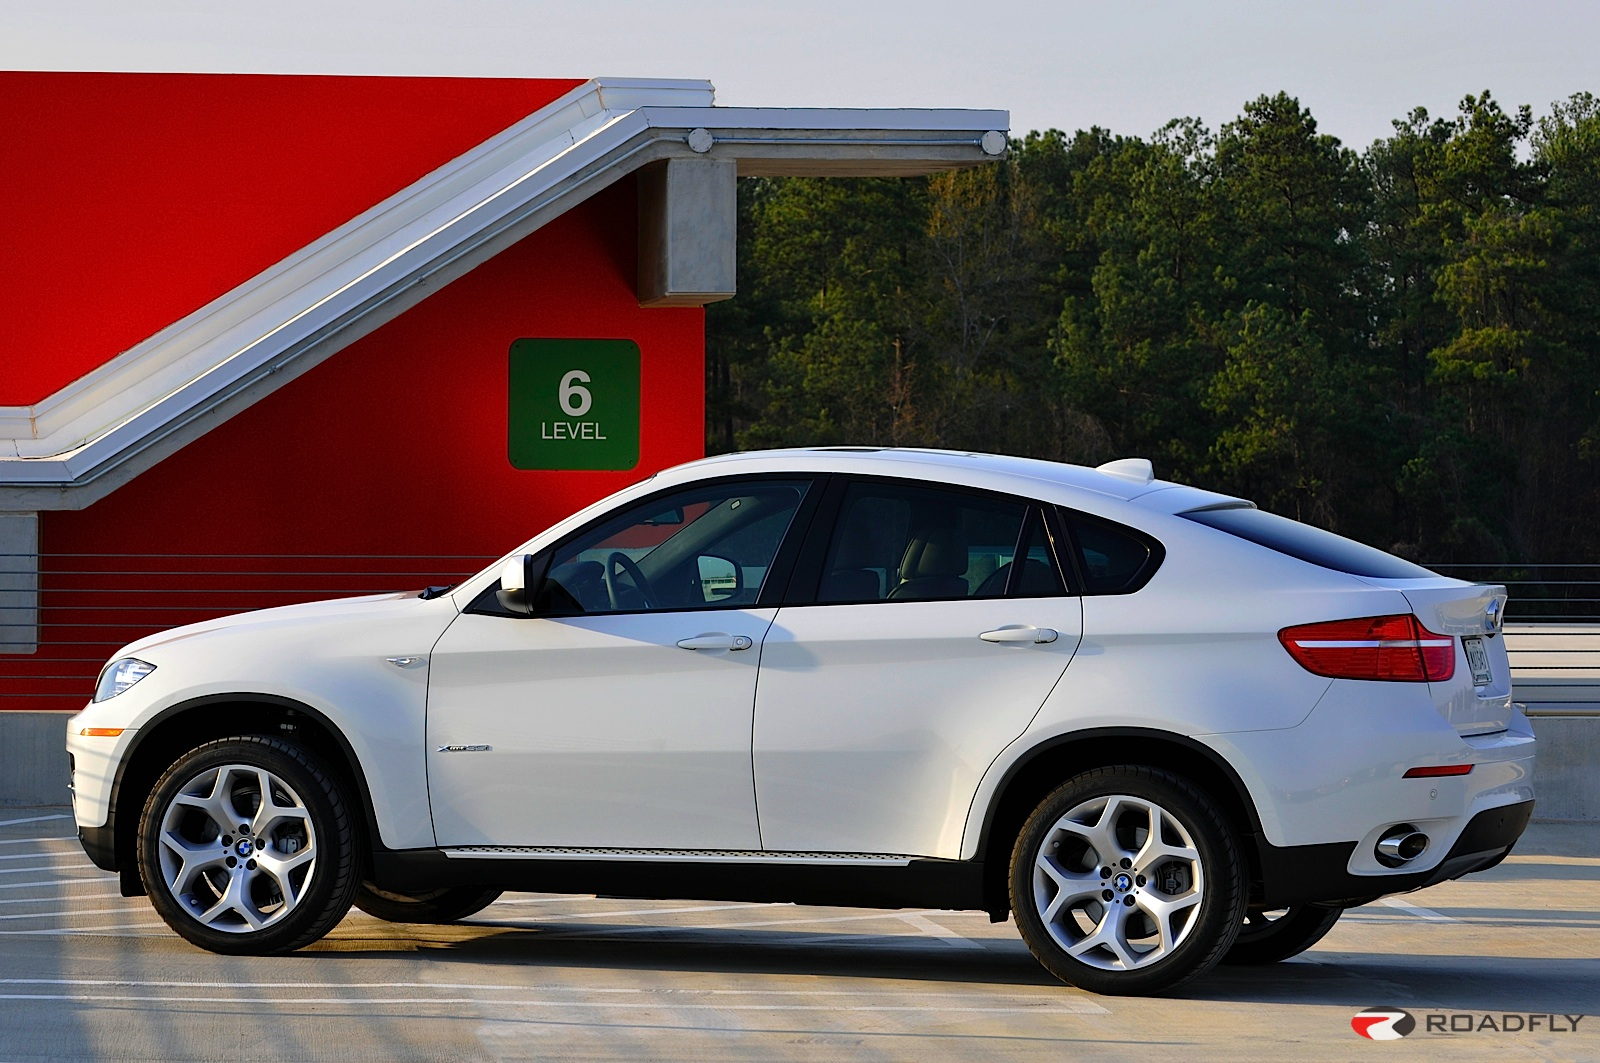 bmw x6 2009 images #1